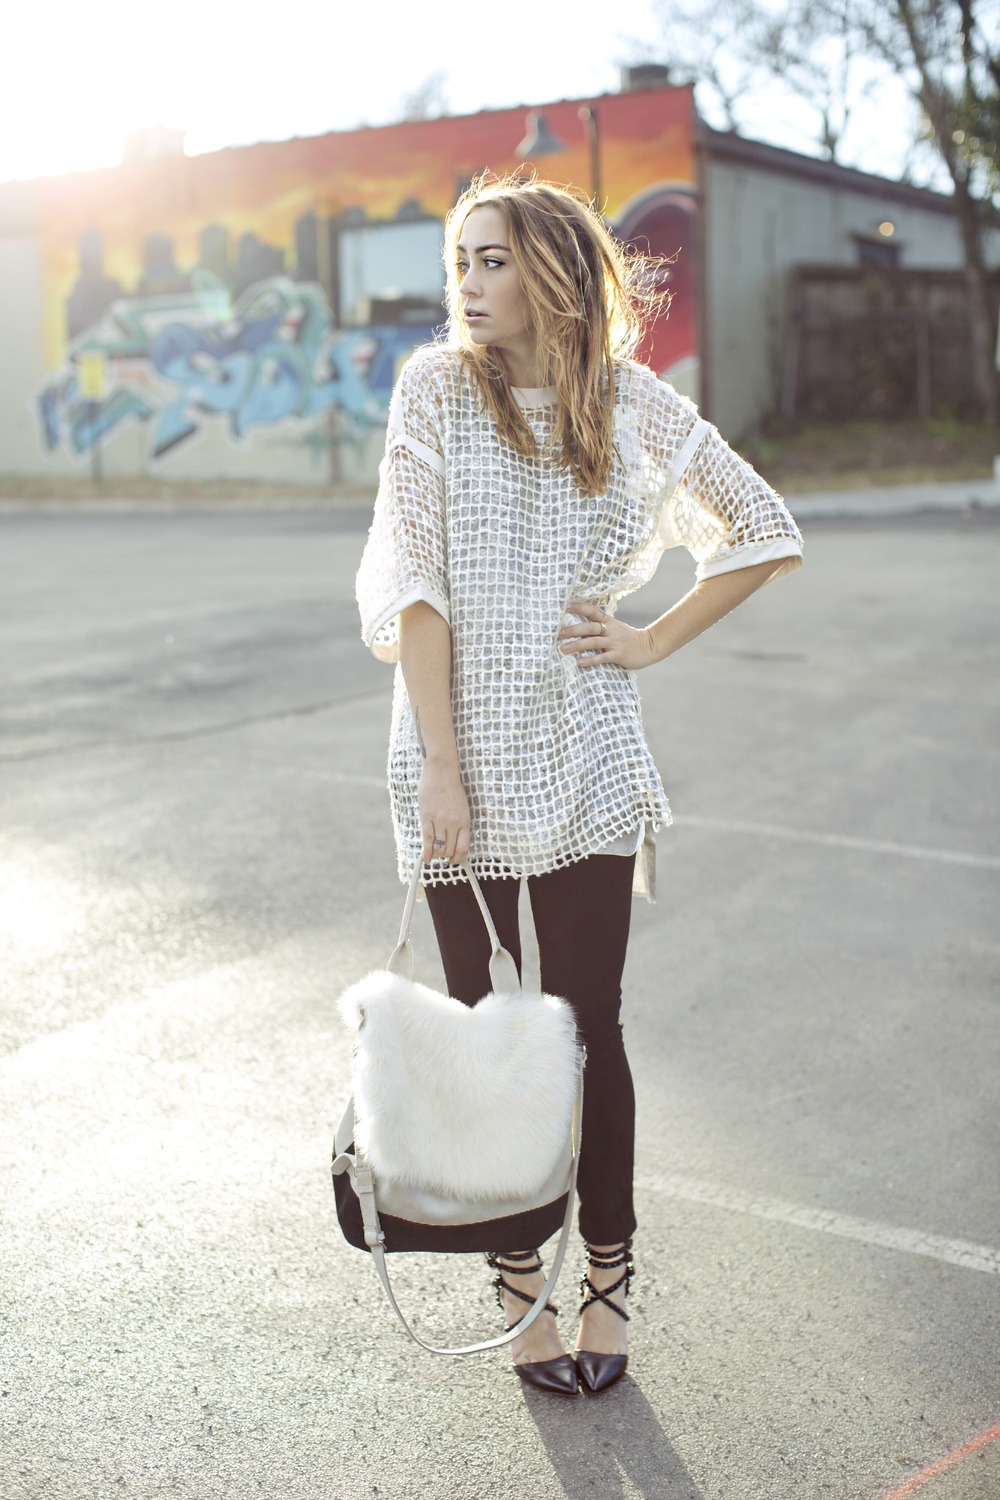 Top - Aviu | Pants - Transit | Shoes - Alice + Olivia | Bag - Farfetch || photos by Susannah Brittany